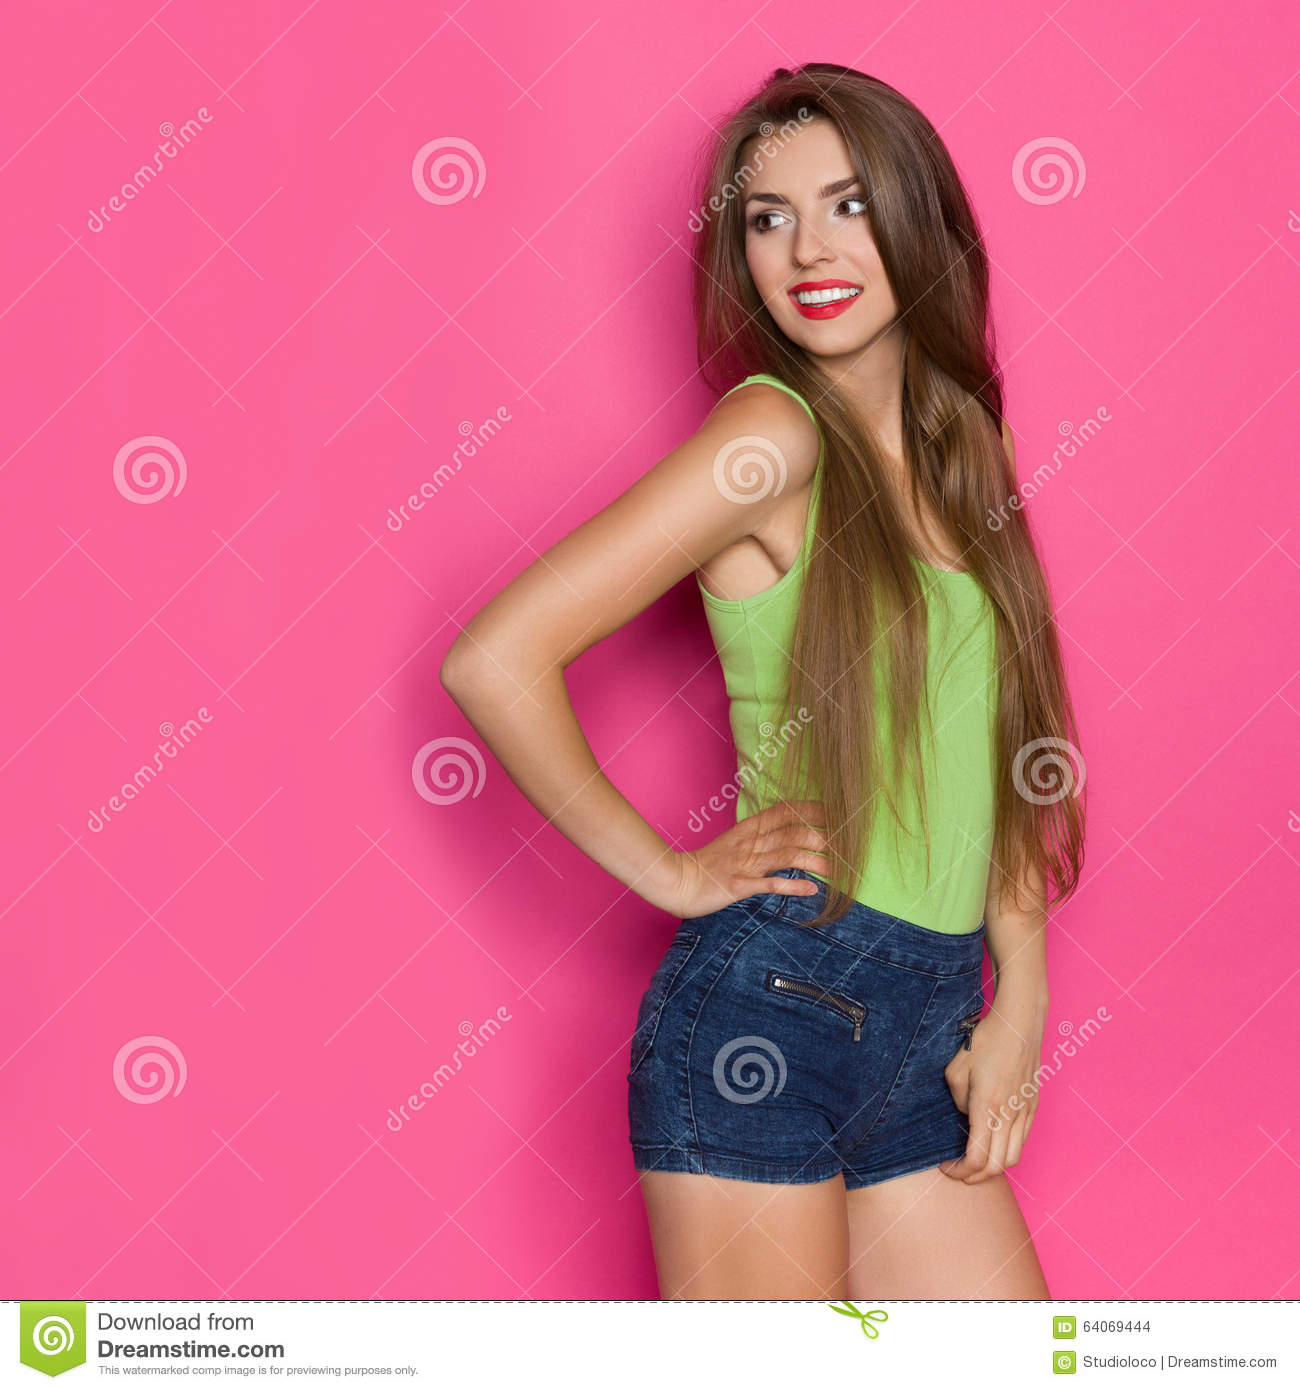 18cda52a137972 Young beautiful woman in jeans shorts and lime green shirt posing with hand  on hip and looking away at copy space. Three quarter length studio shot on  pink ...